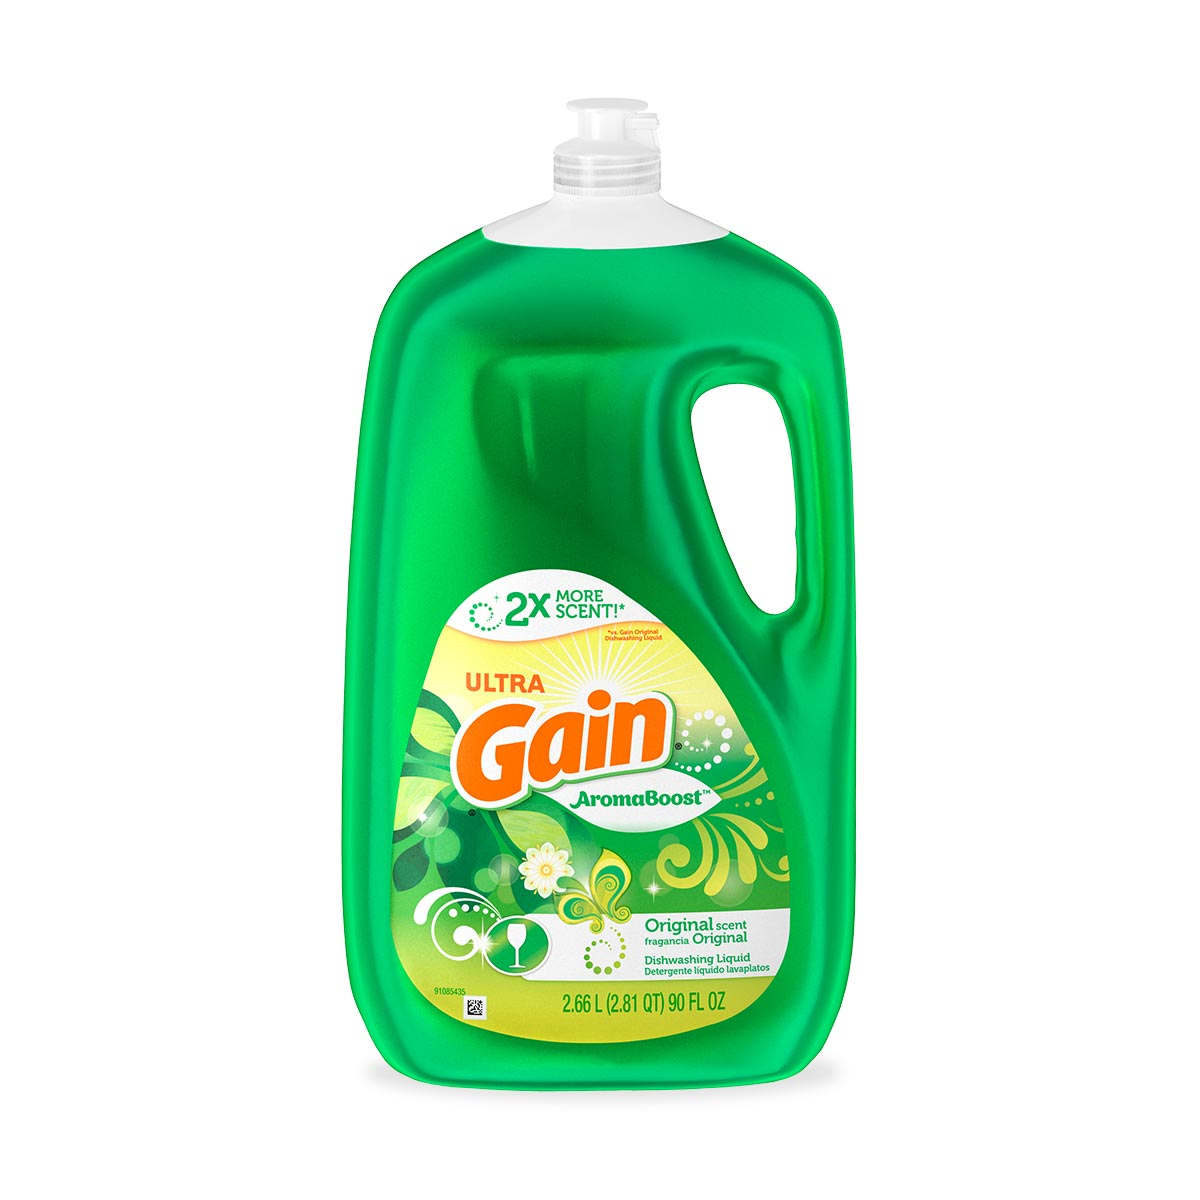 Gain Original Aroma Boost Dish Soap